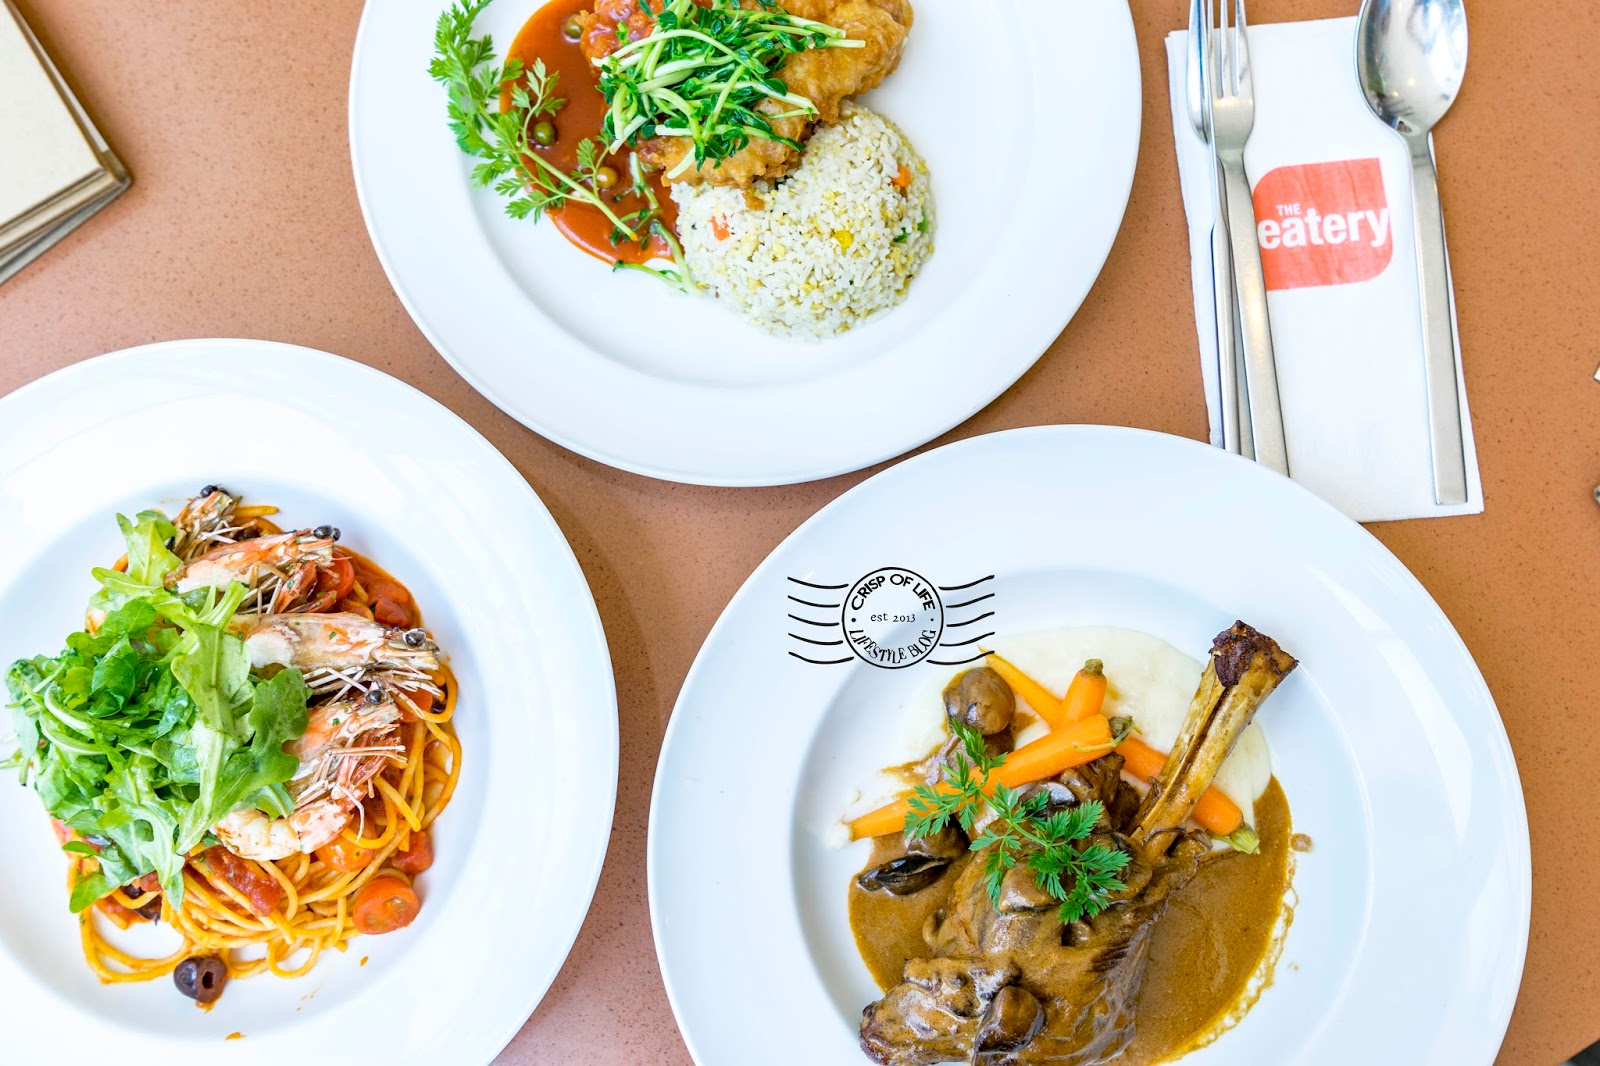 Four Points by Sheraton Penang The Eatery A La Carte Dishes